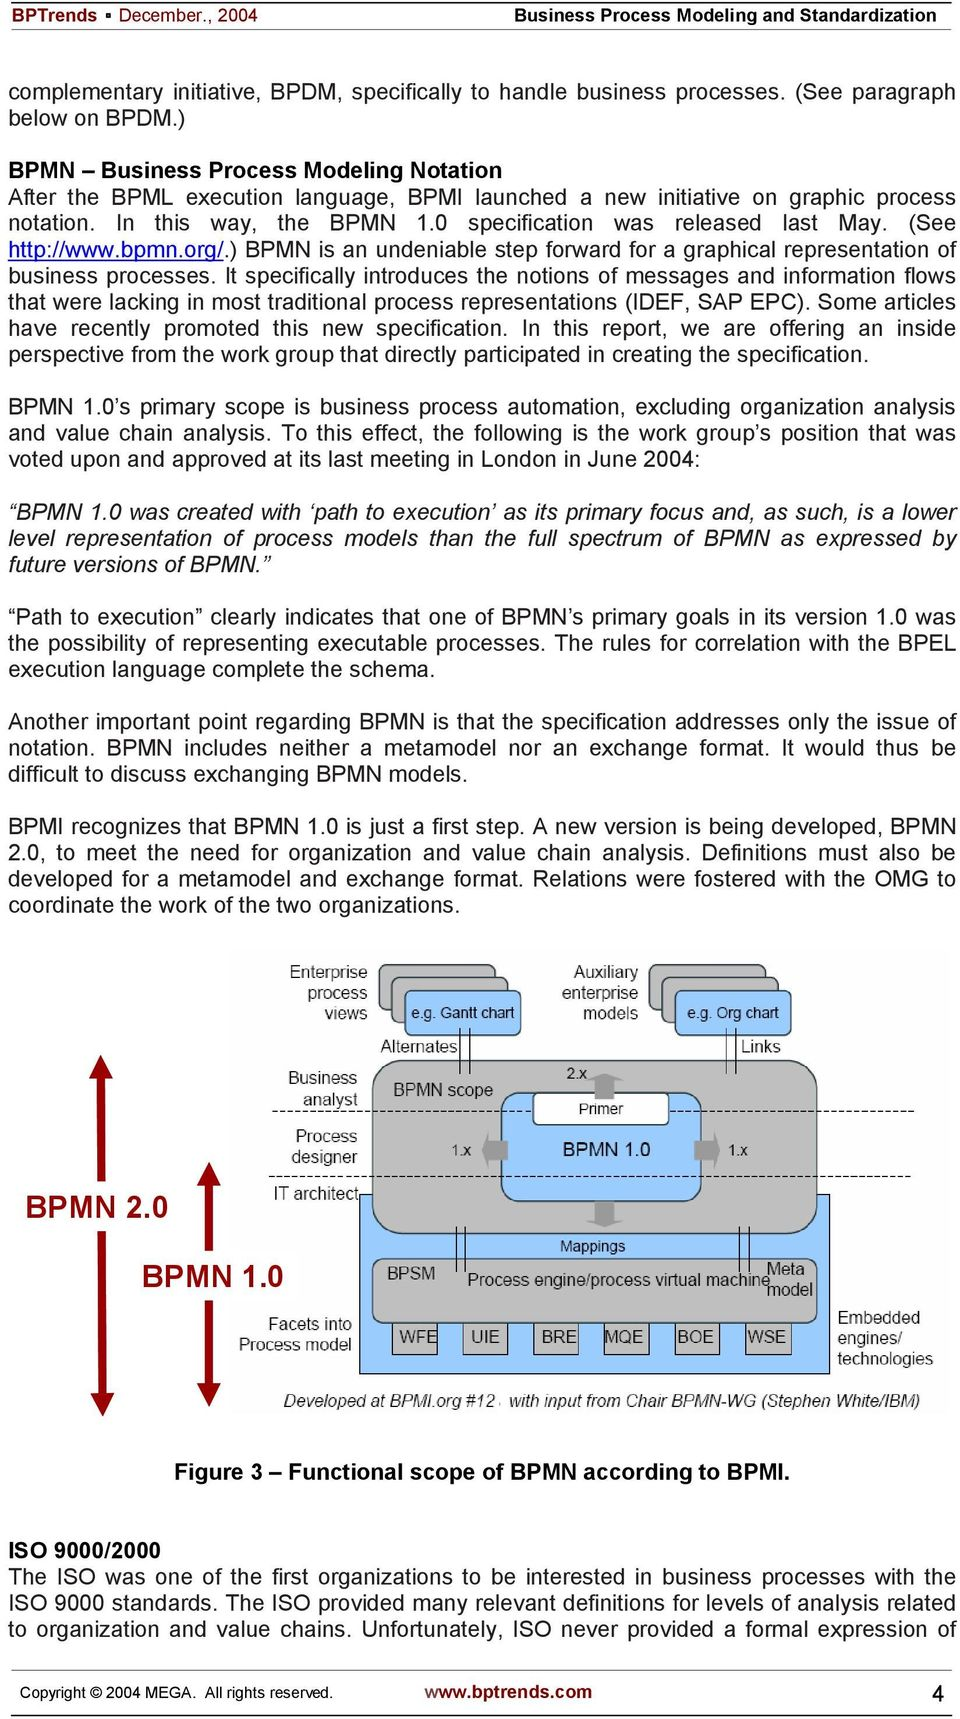 (See http://www.bpmn.org/.) BPMN is an undeniable step forward for a graphical representation of business processes.